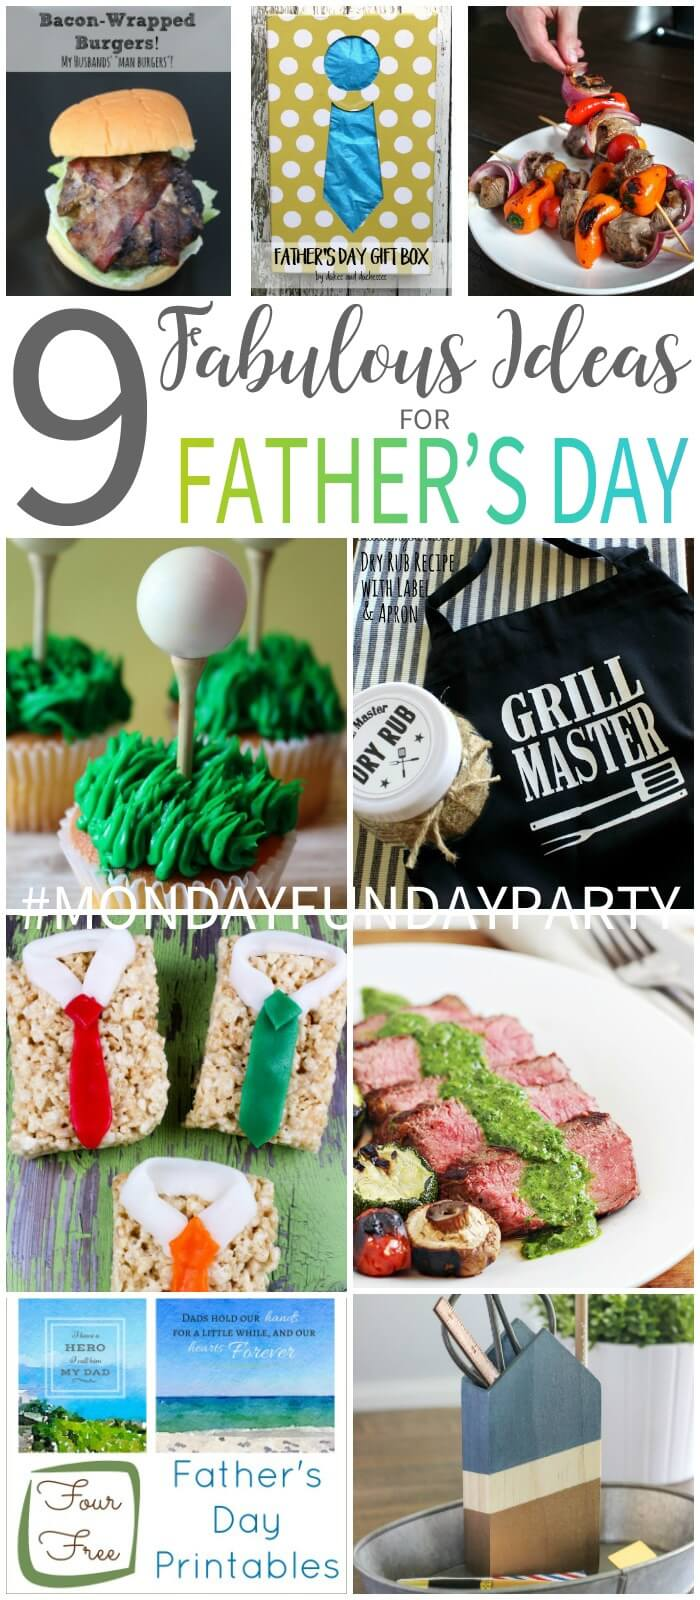 Father's Day Ideas at Monday Funday Link Party